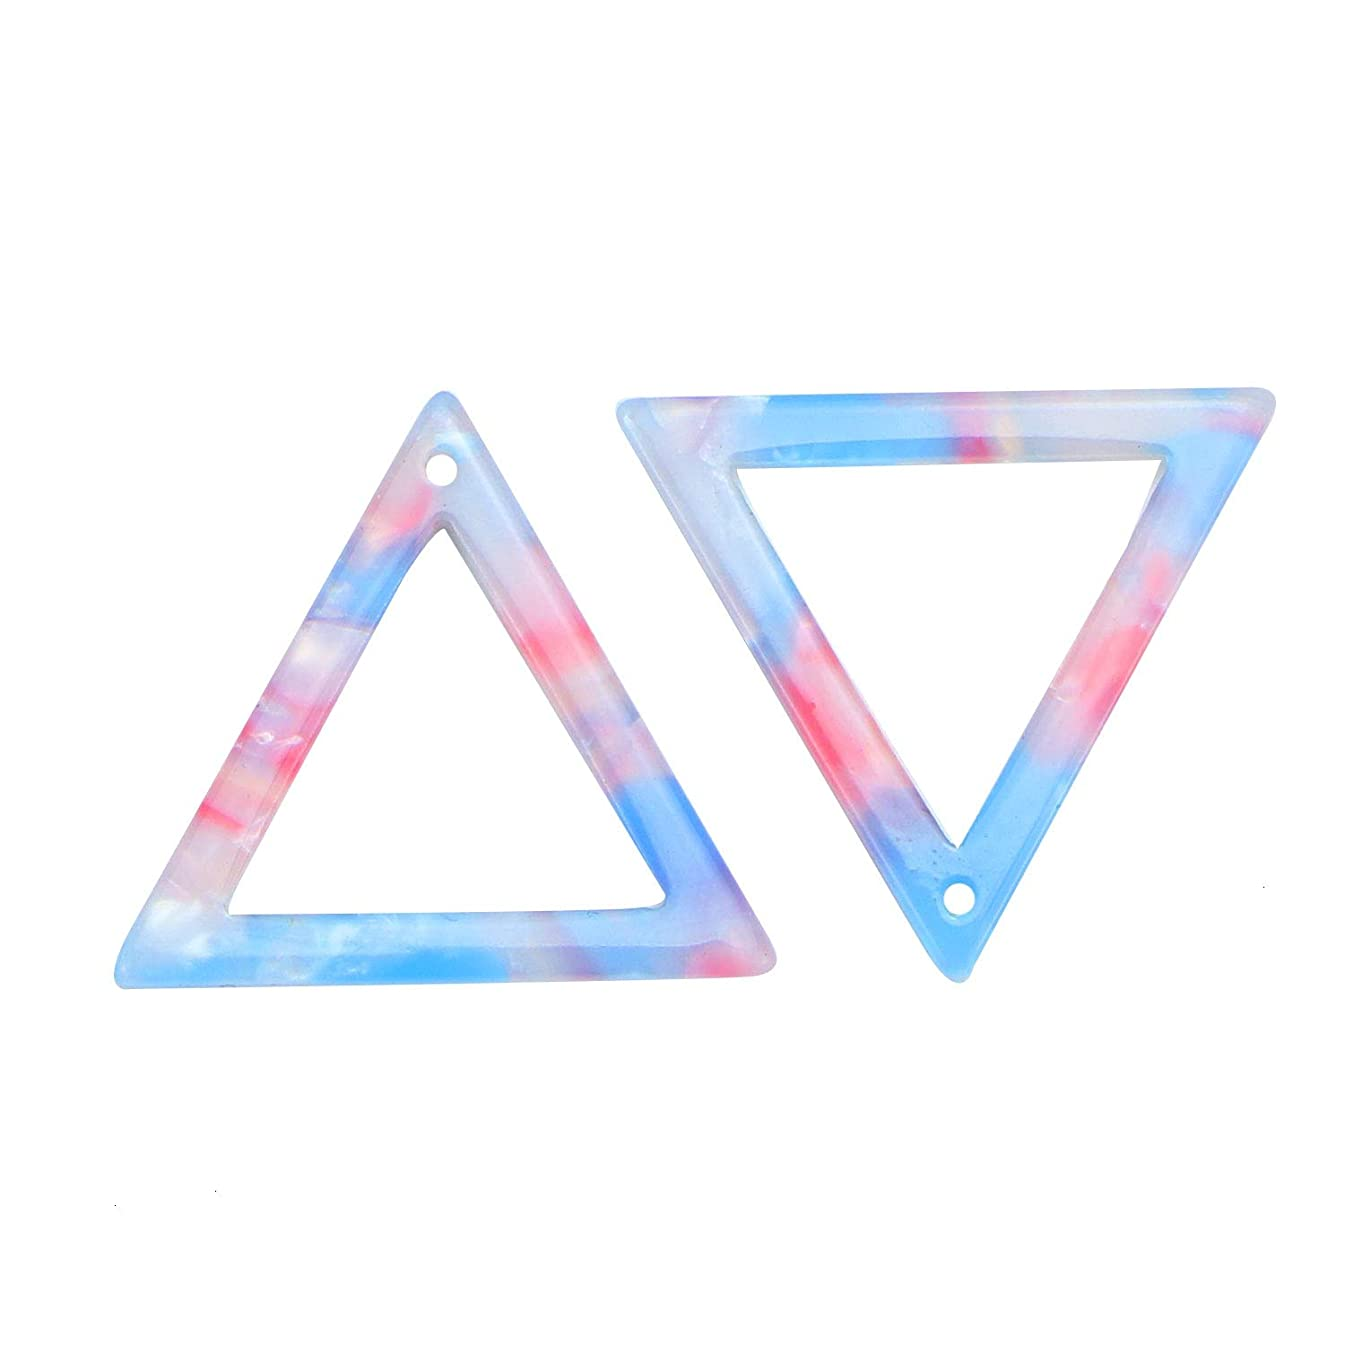 Monrocco 10PCS Acetate Acrylic Triangle Pendant Triangle Hollow Out Charm Pendant DIY Jewelry Making for Necklaces Bracelets Earring